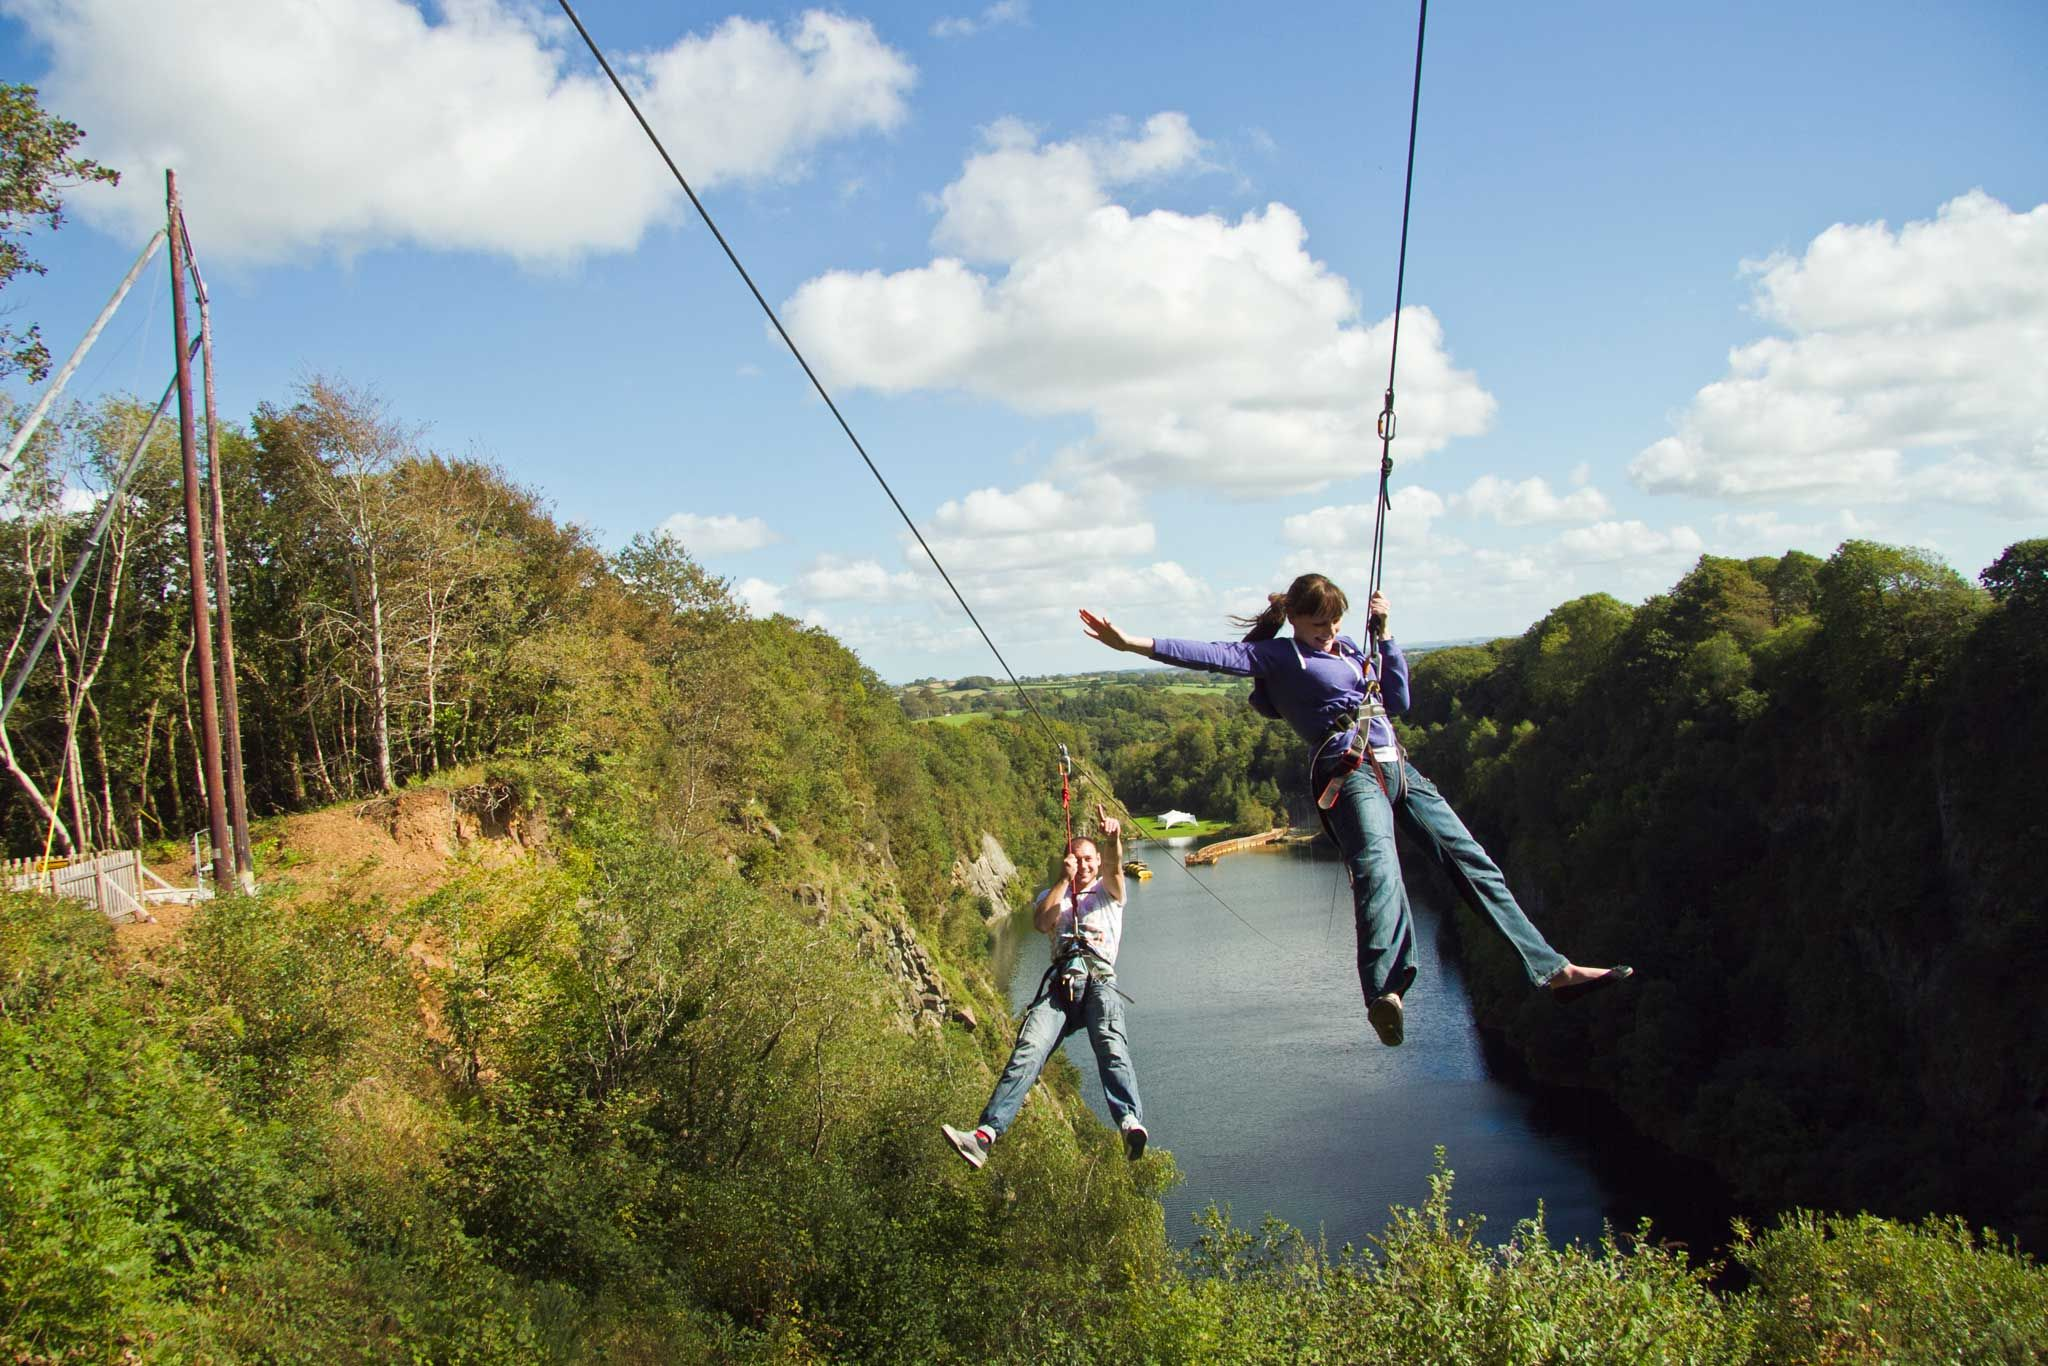 4 man zip wire wales yamaha mio mxi 125 wiring diagram things to do in cornwall uk 39s biggest and